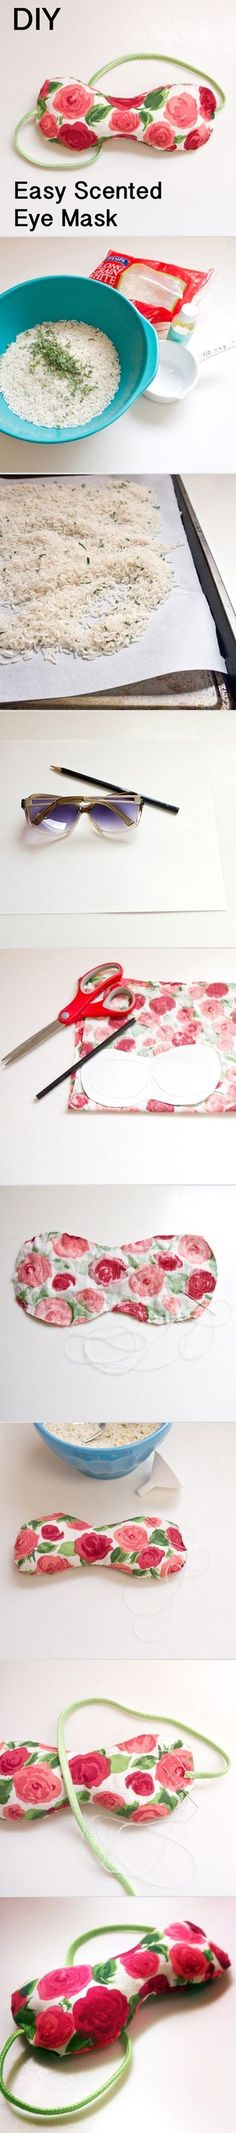 DIY ~ How to make this microwavable eyemask that's infused with herbs and relaxing essential oils.